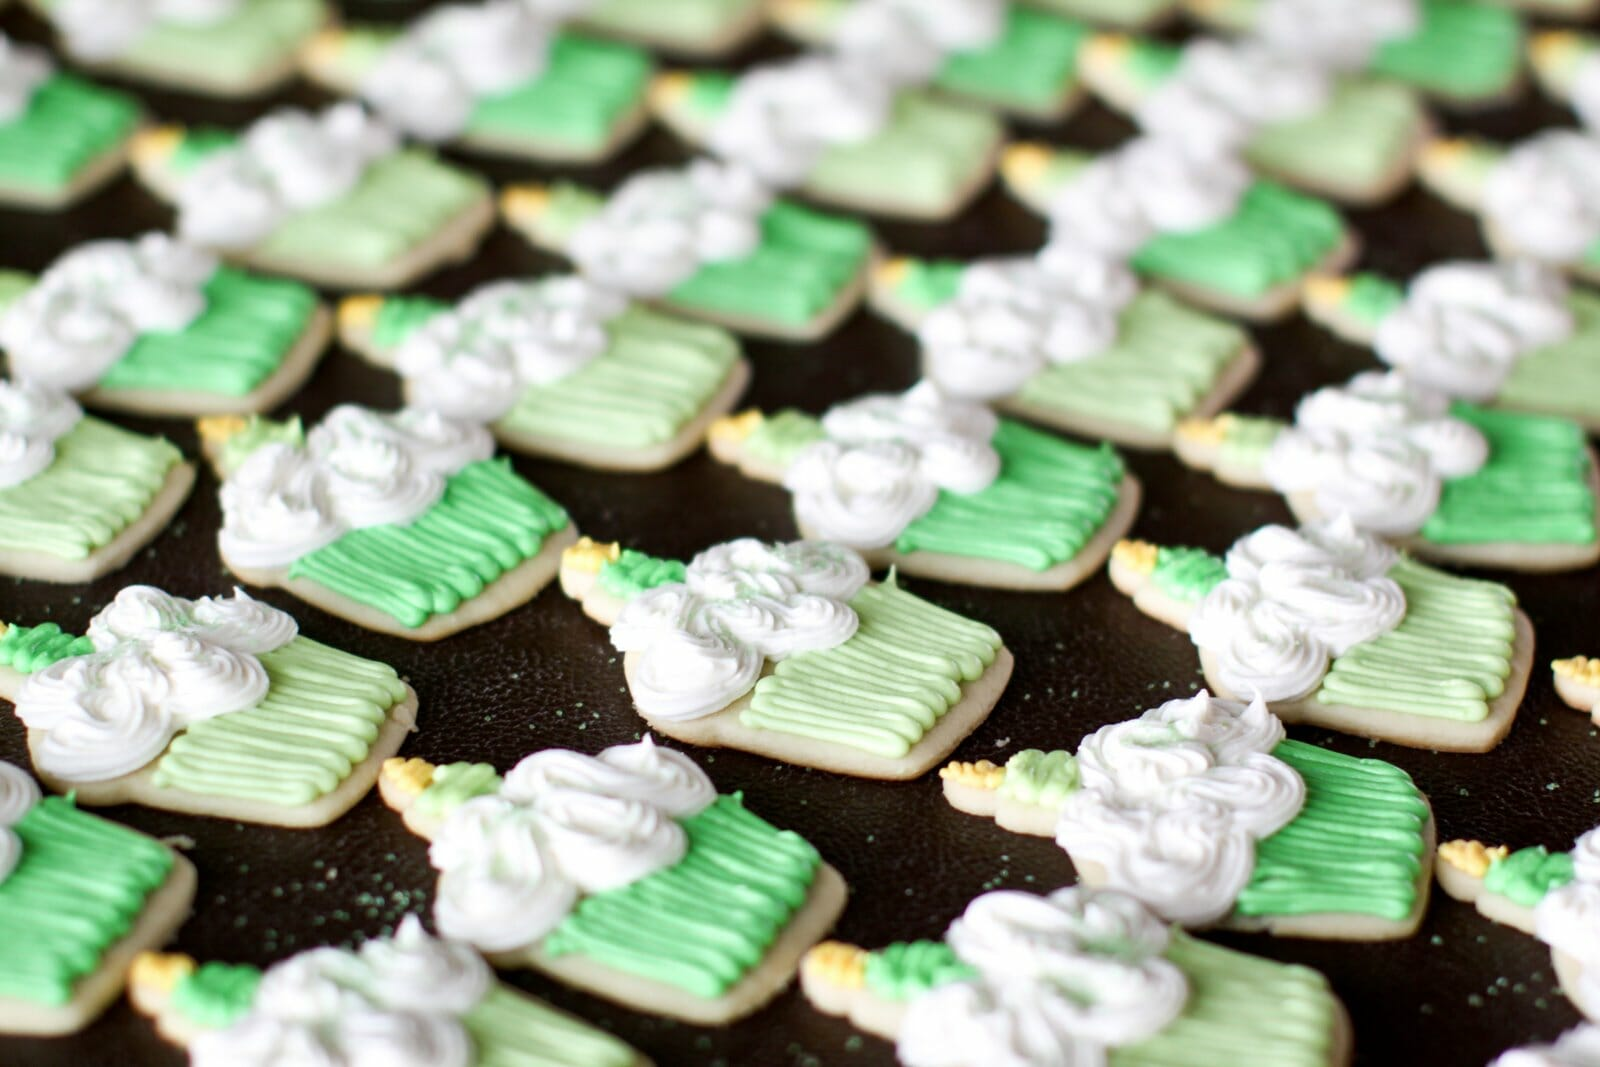 Green and White Themed Cookies